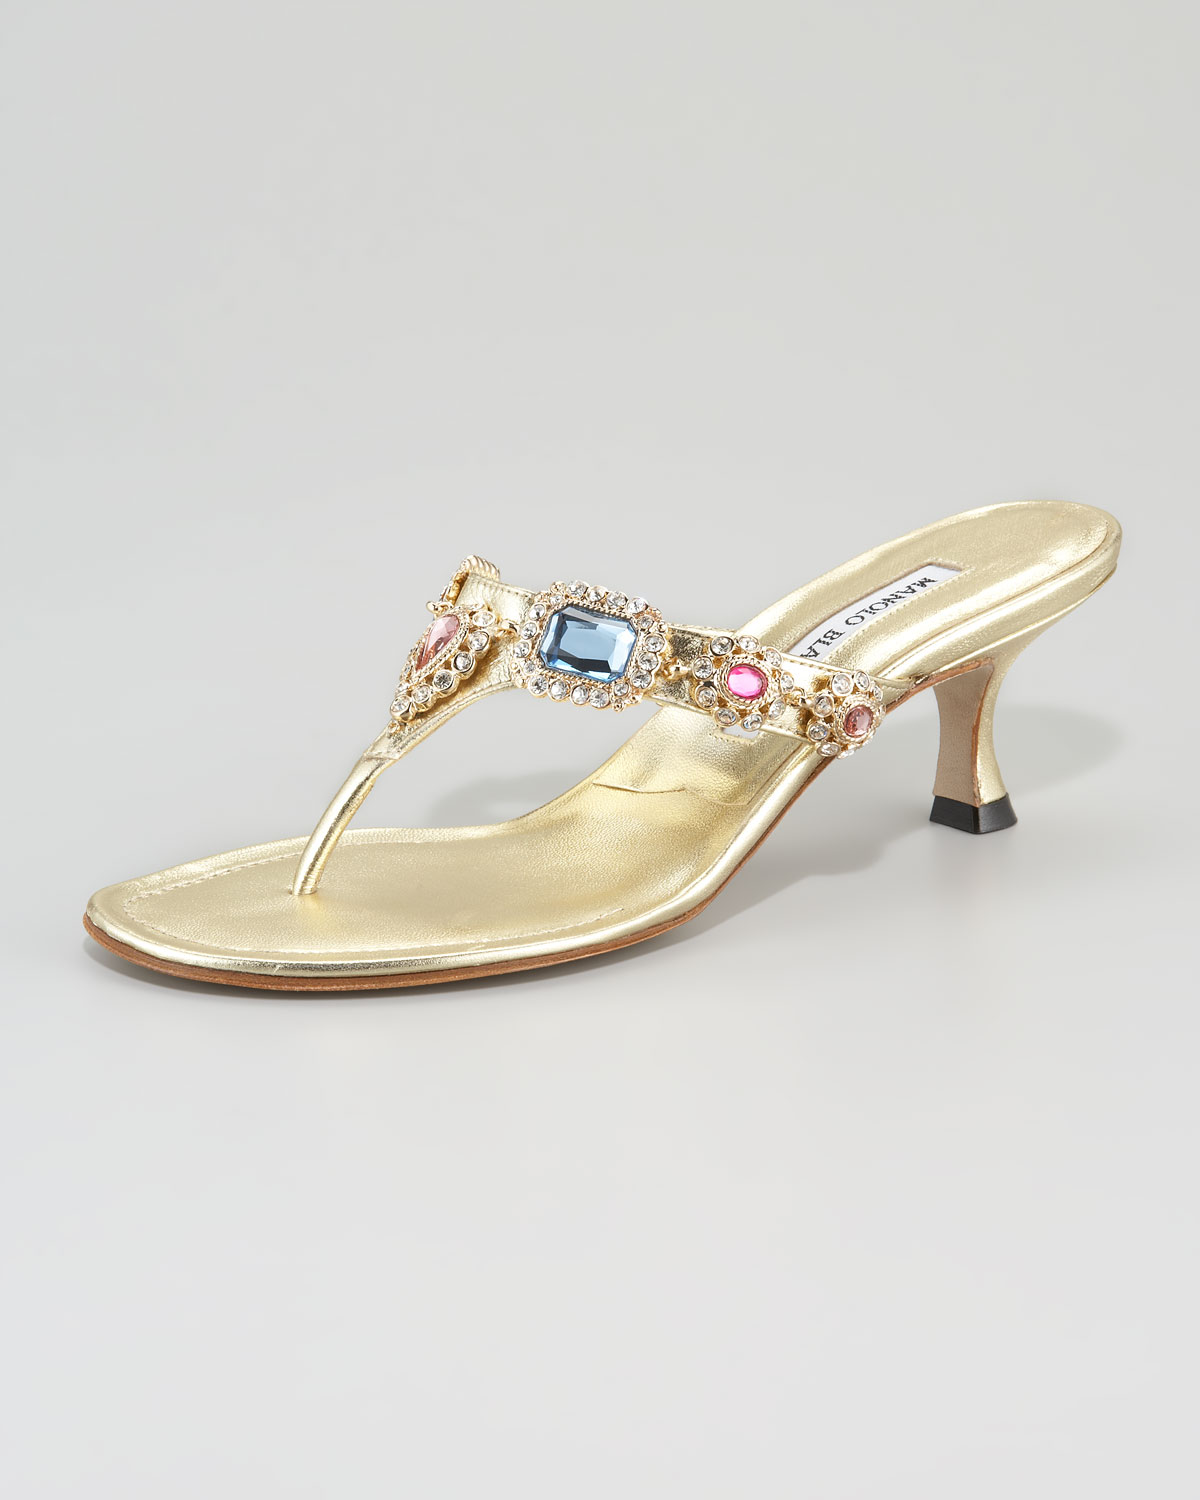 Manolo blahnik Beaded Kitten-heel Thong Sandal in Metallic | Lyst